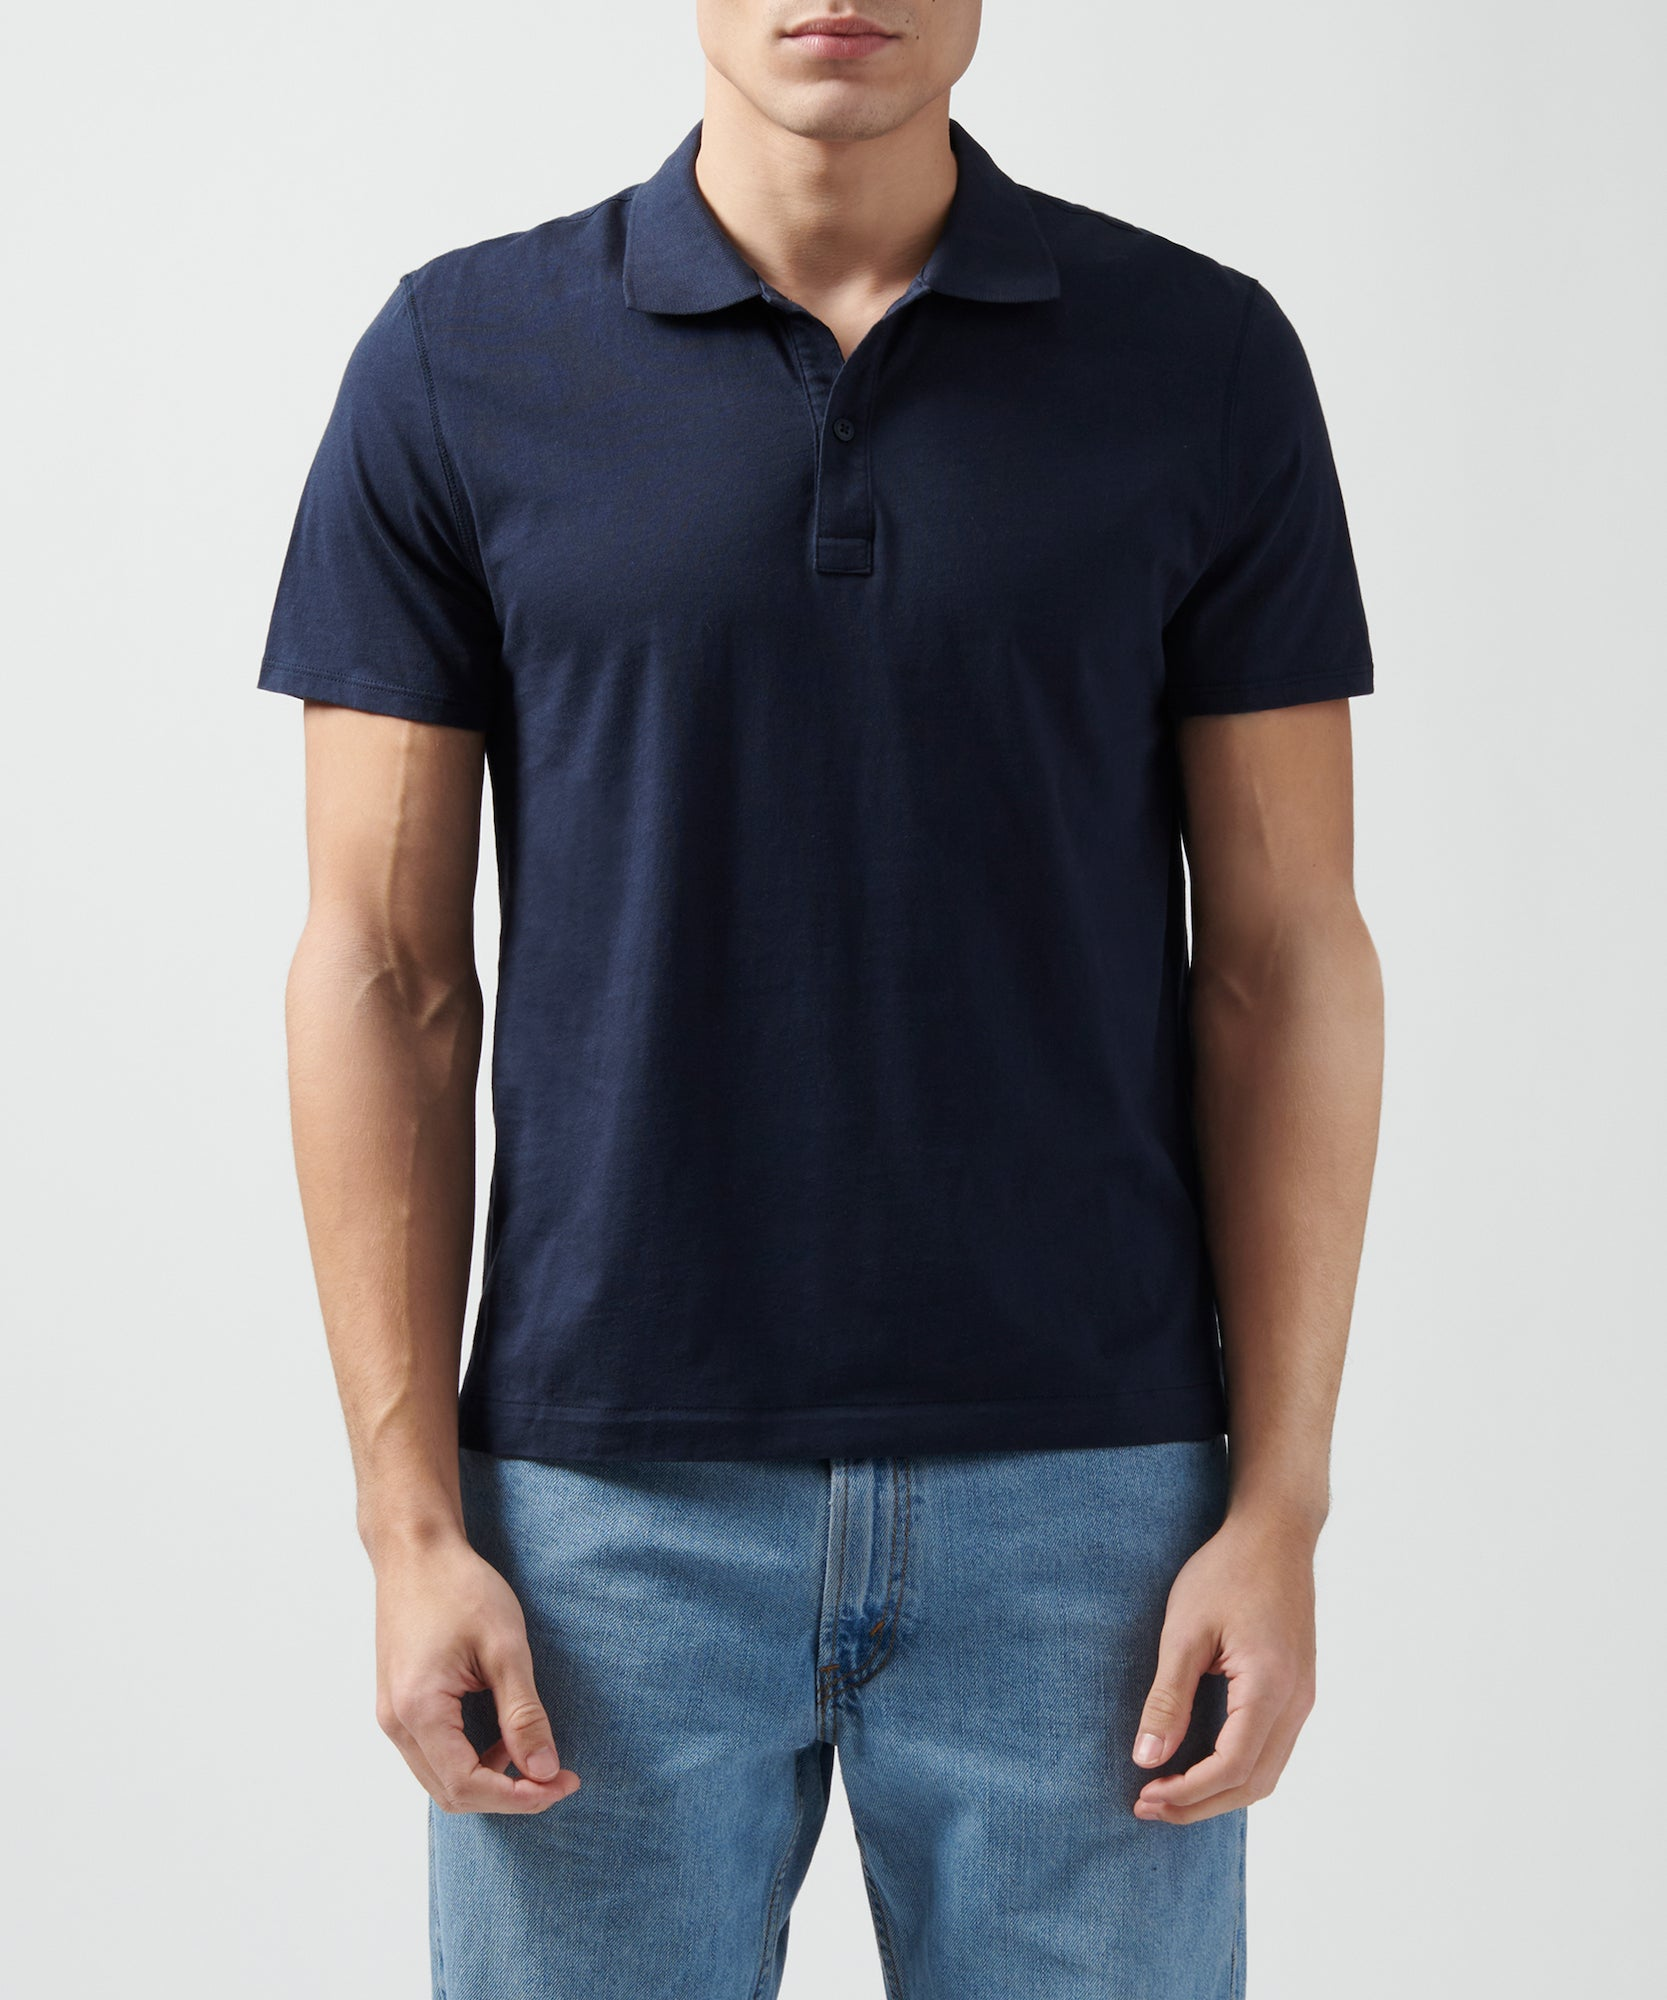 Midnight Classic Jersey Polo - Men's Polo Shirt by ATM Anthony Thomas Melillo